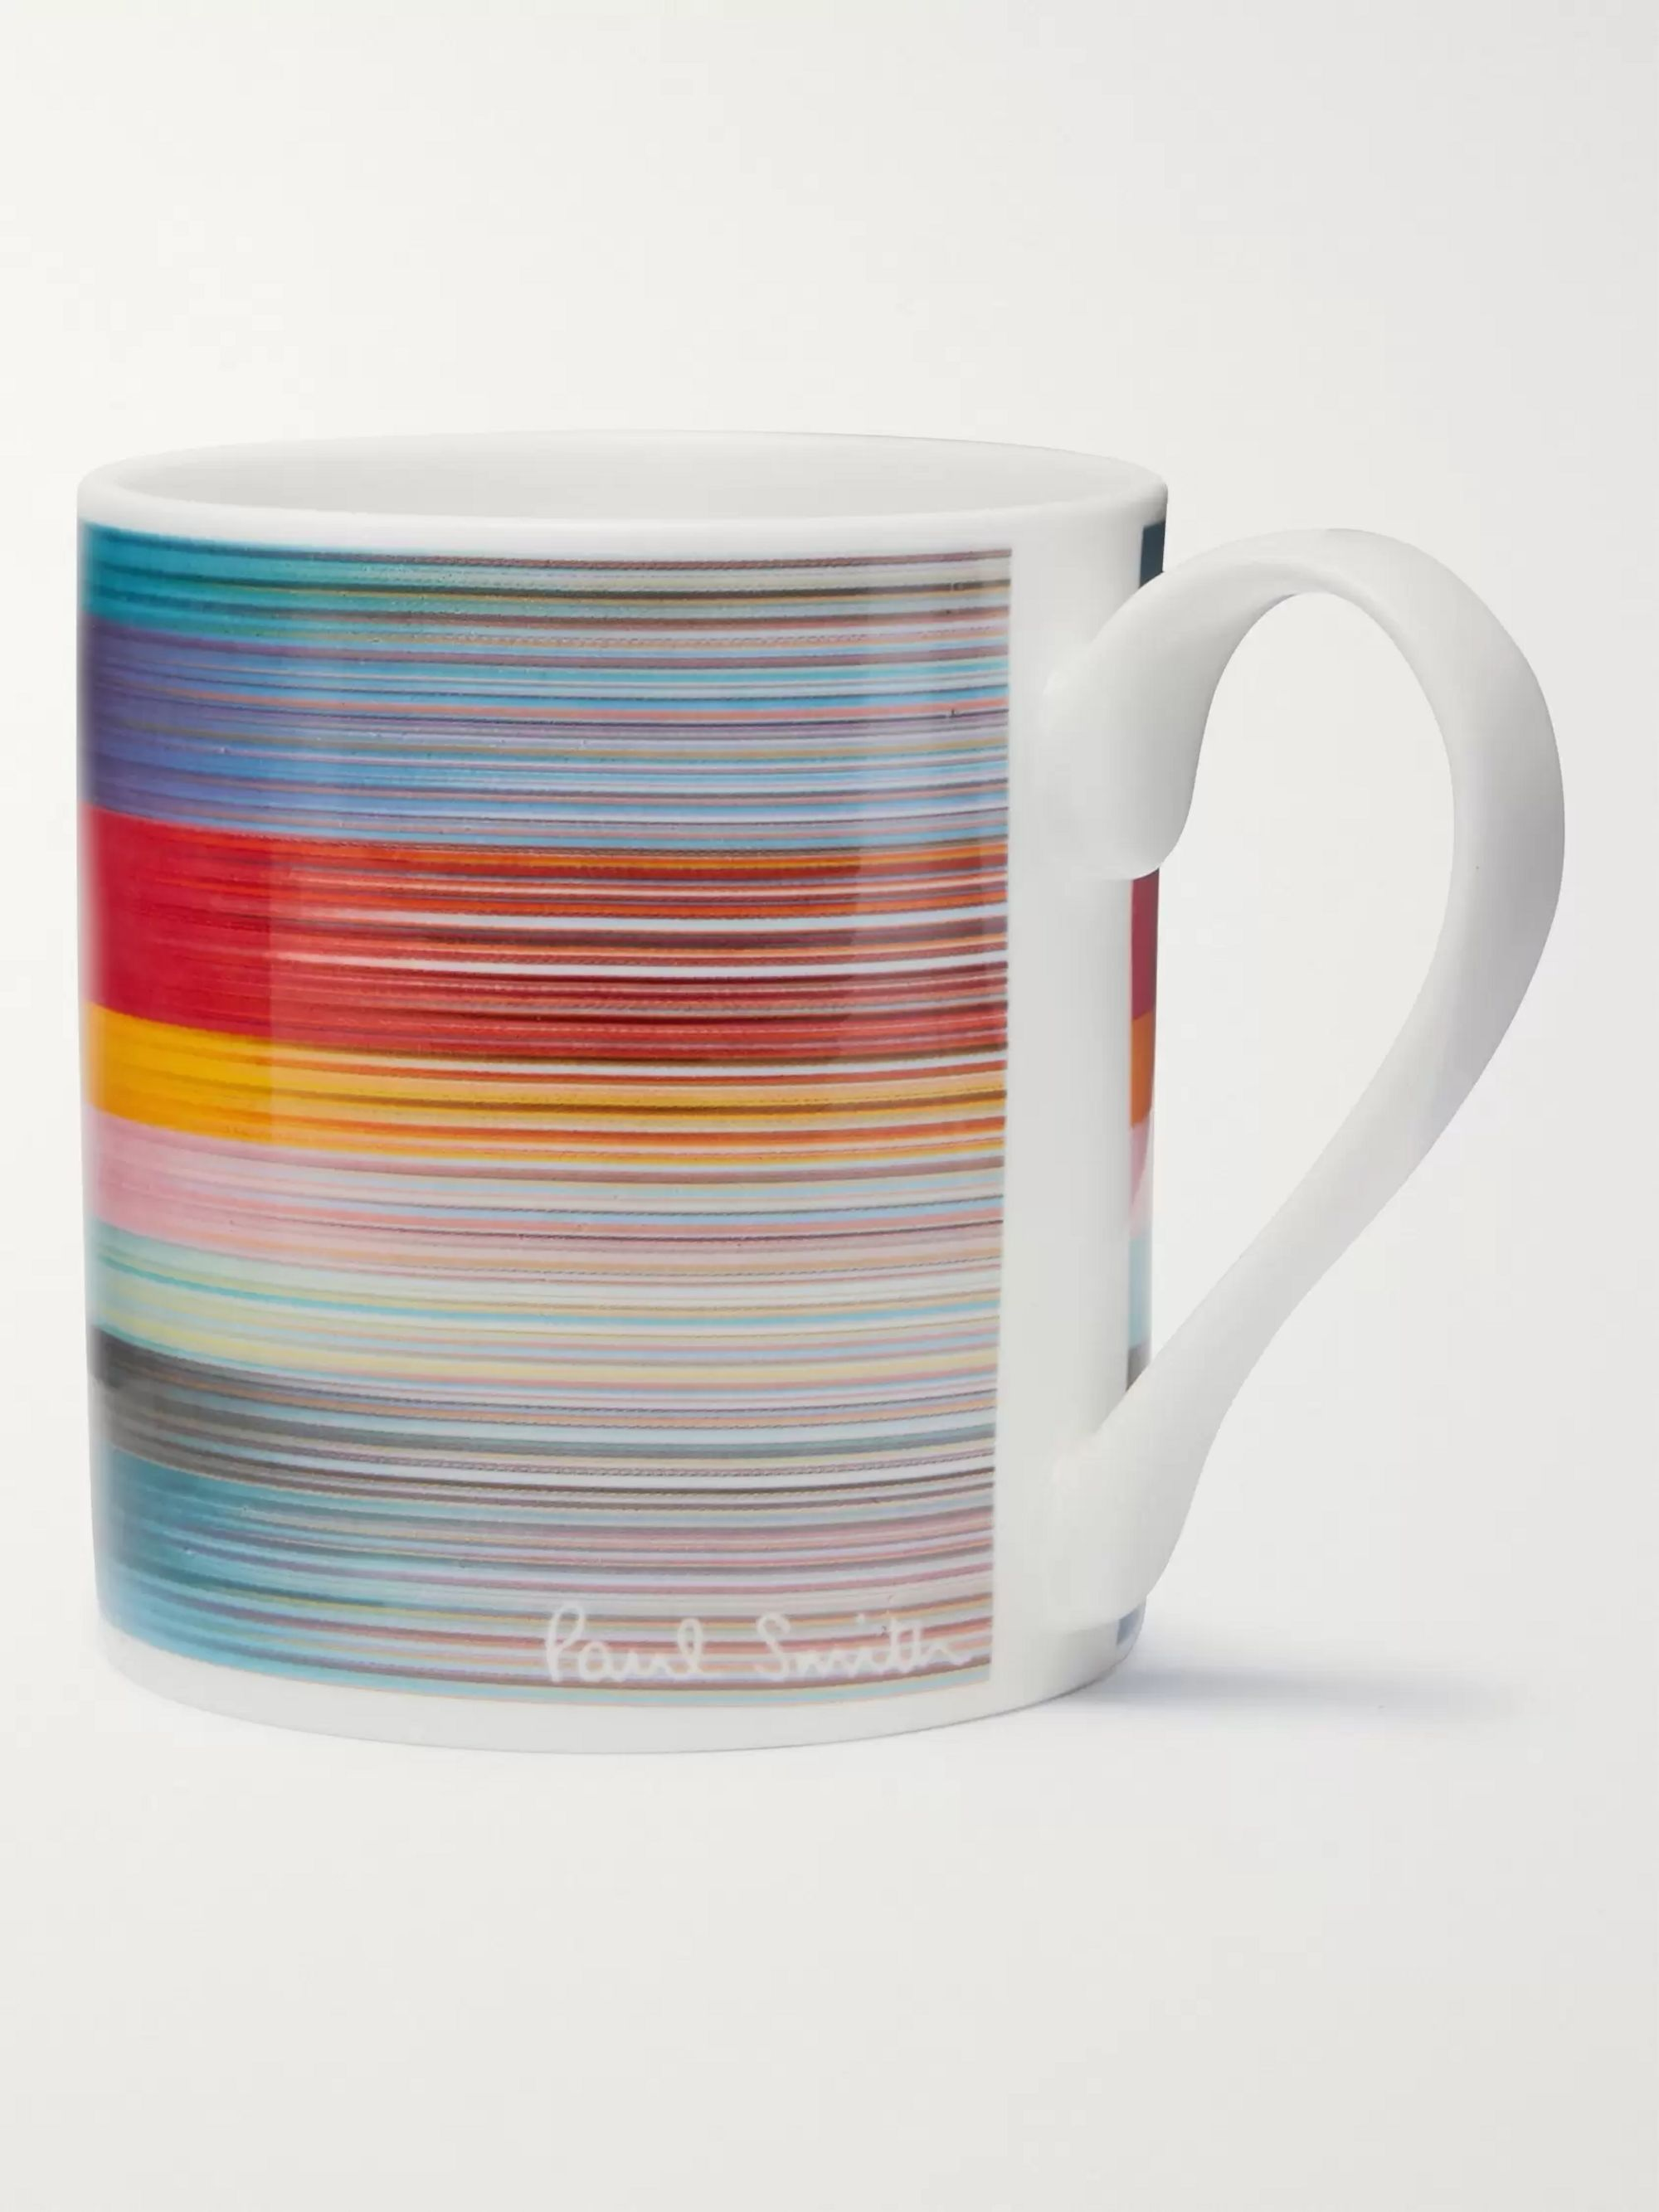 Paul Smith Striped Bone China Mug